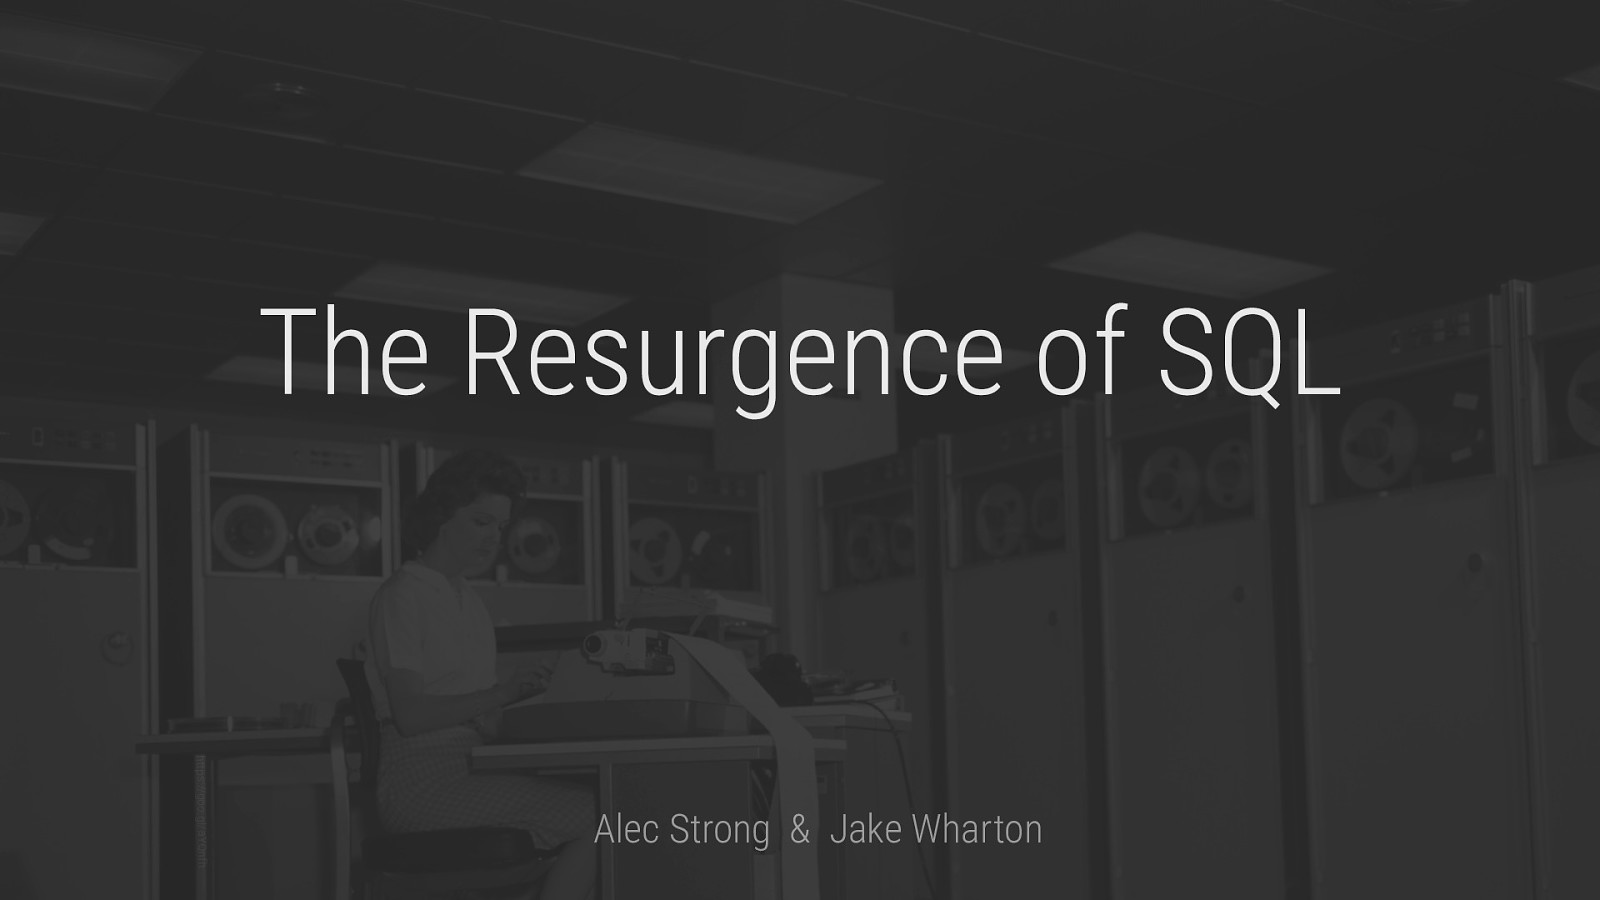 The Resurgence of SQL